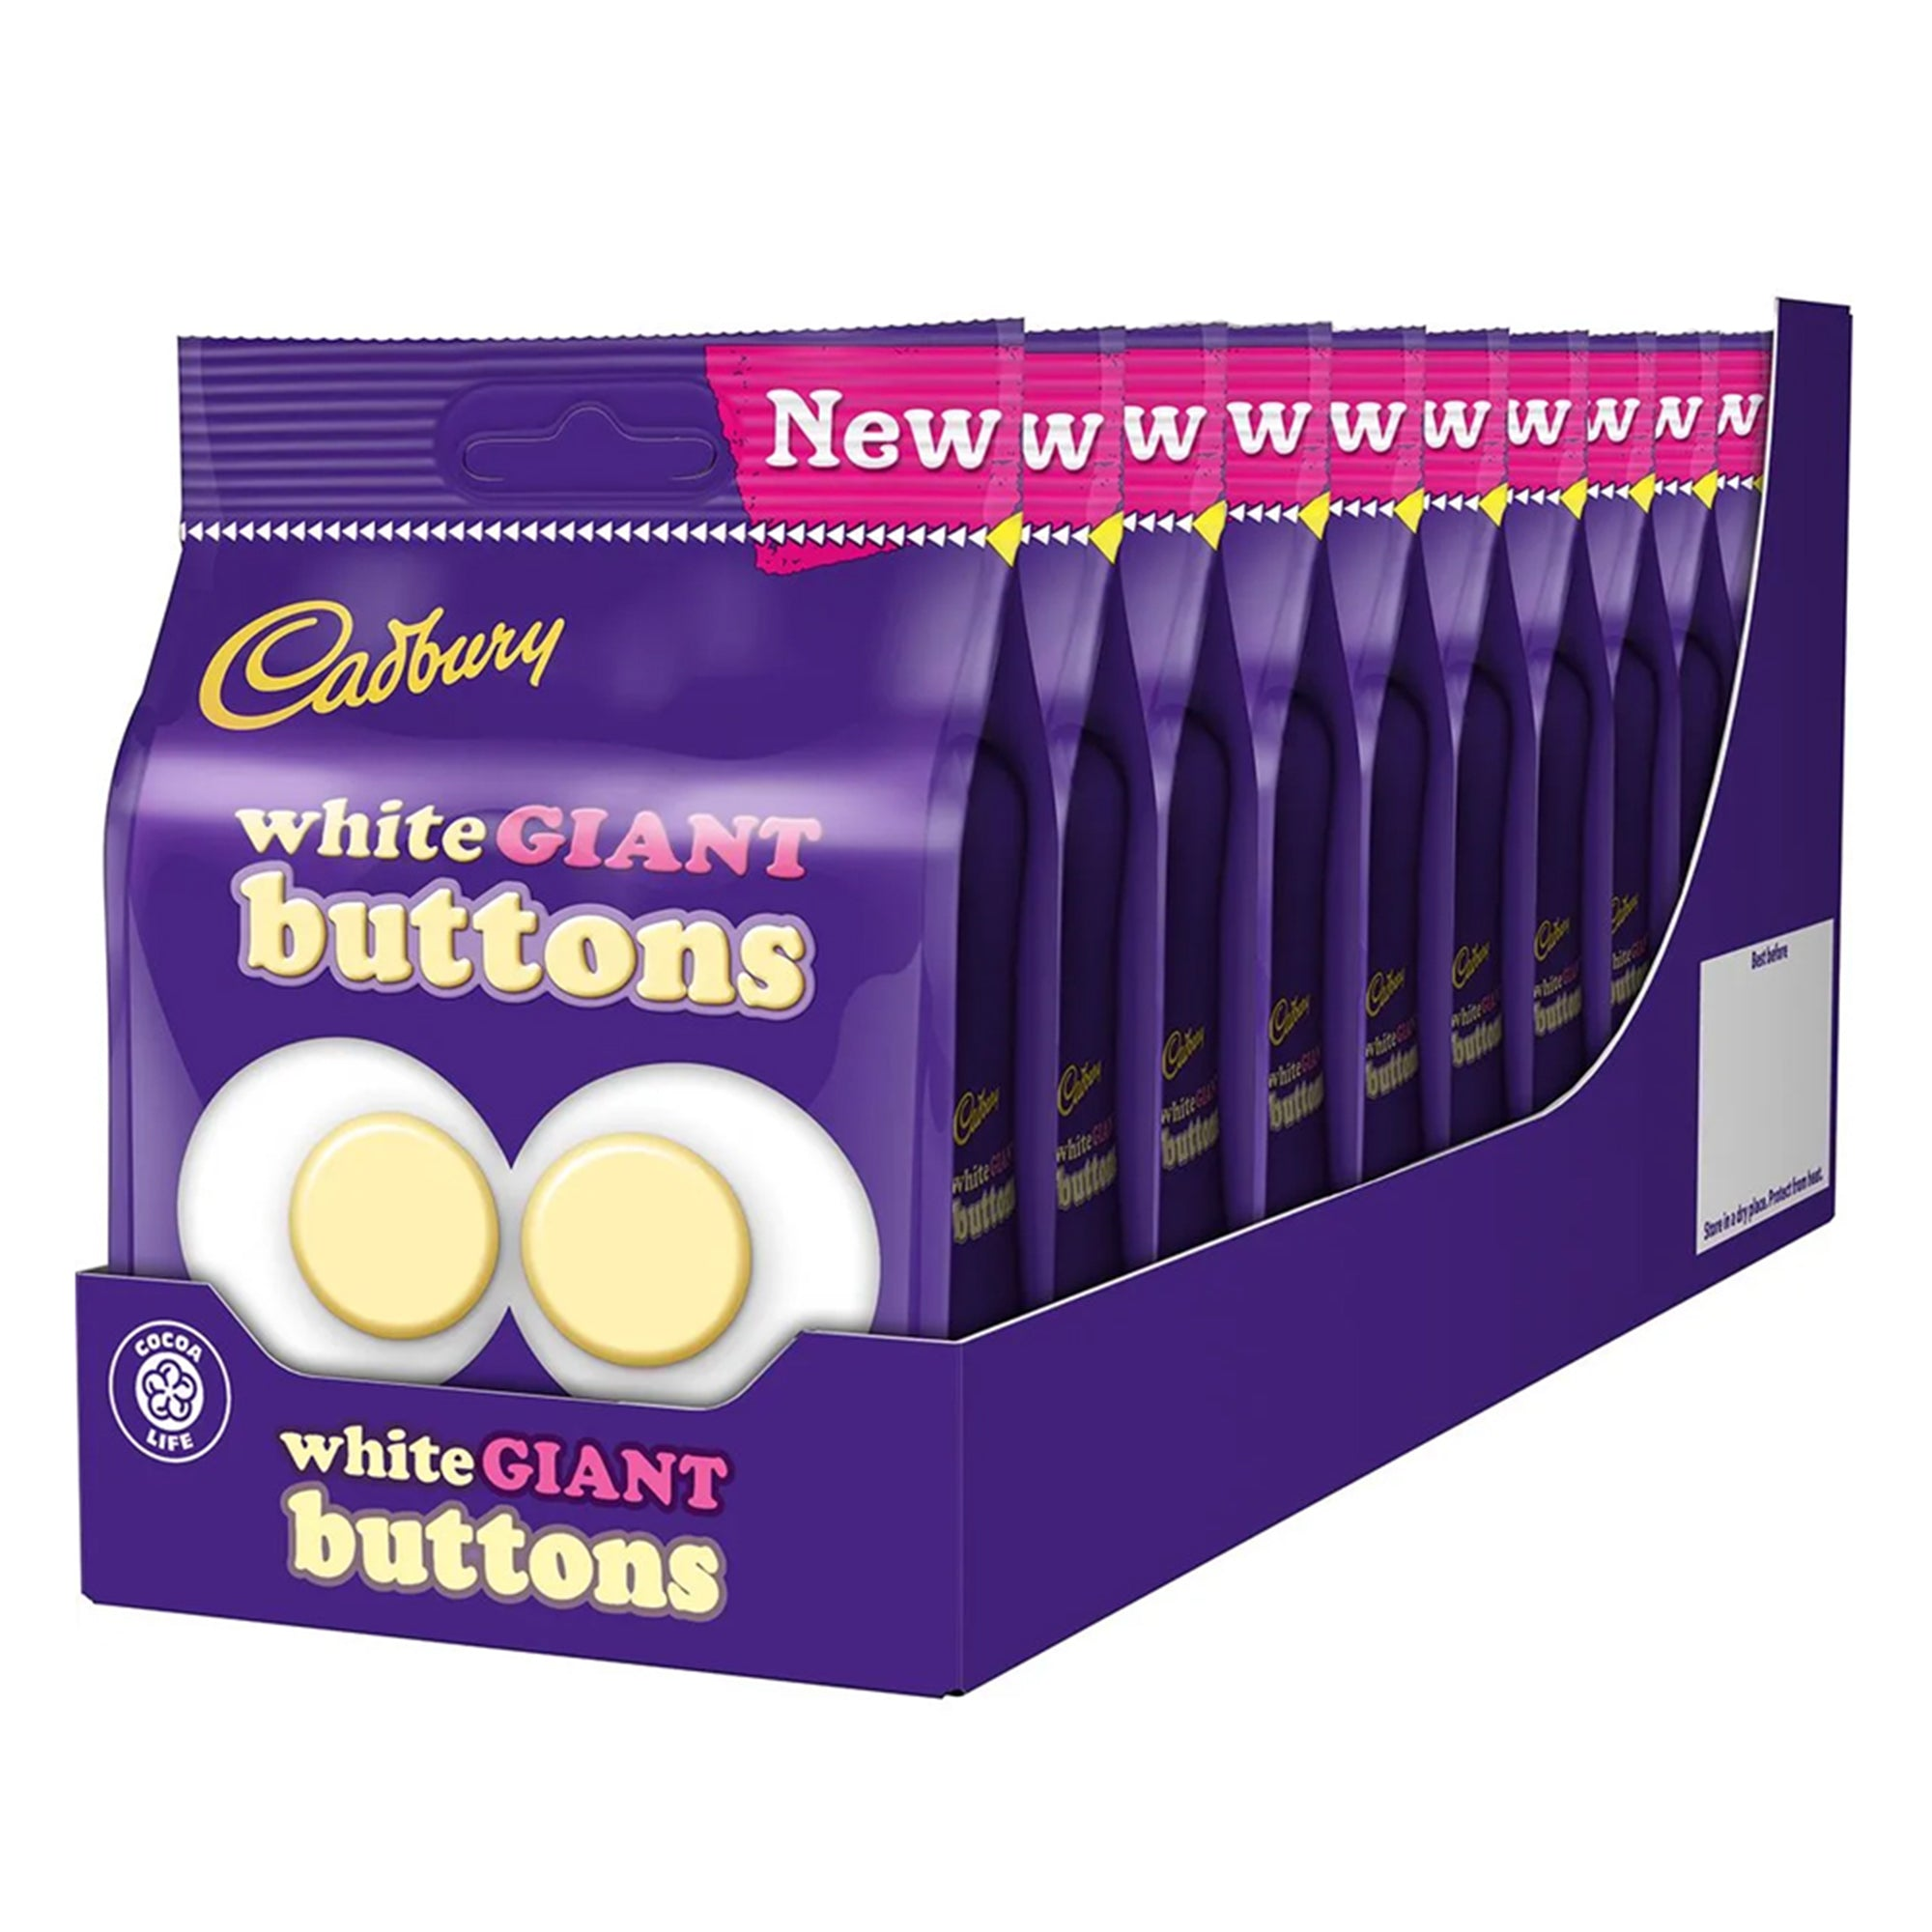 Cadbury White Giants Buttons Chocolate 110g(10 BOX), Food Items by TradeNRG